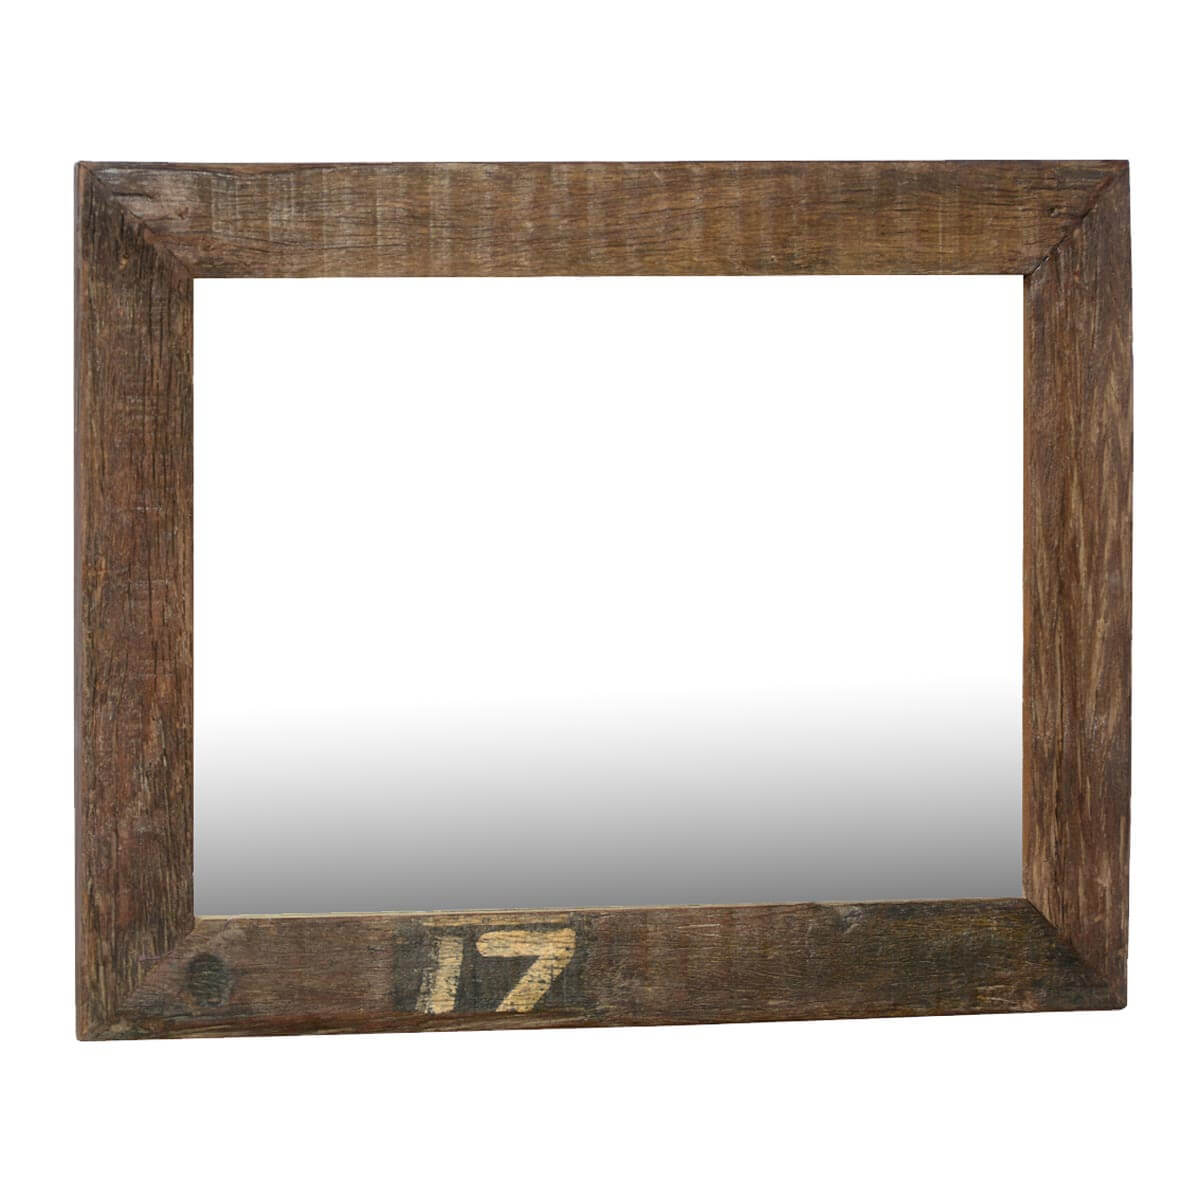 lucky 17 rustic large reclaimed wood wall mirror w simple